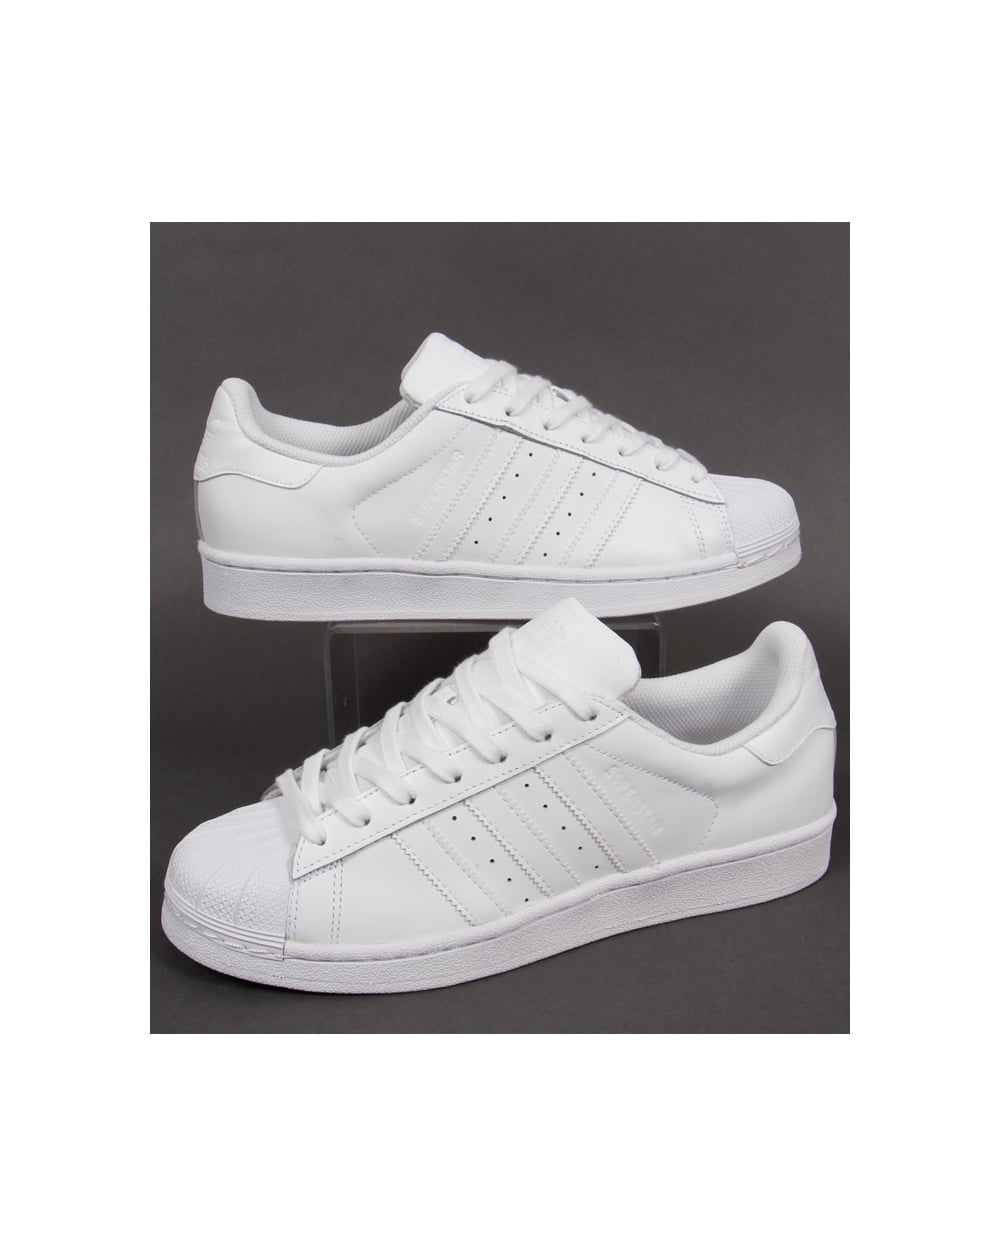 adidas superstar trainers triple white shoes basketball mens. Black Bedroom Furniture Sets. Home Design Ideas